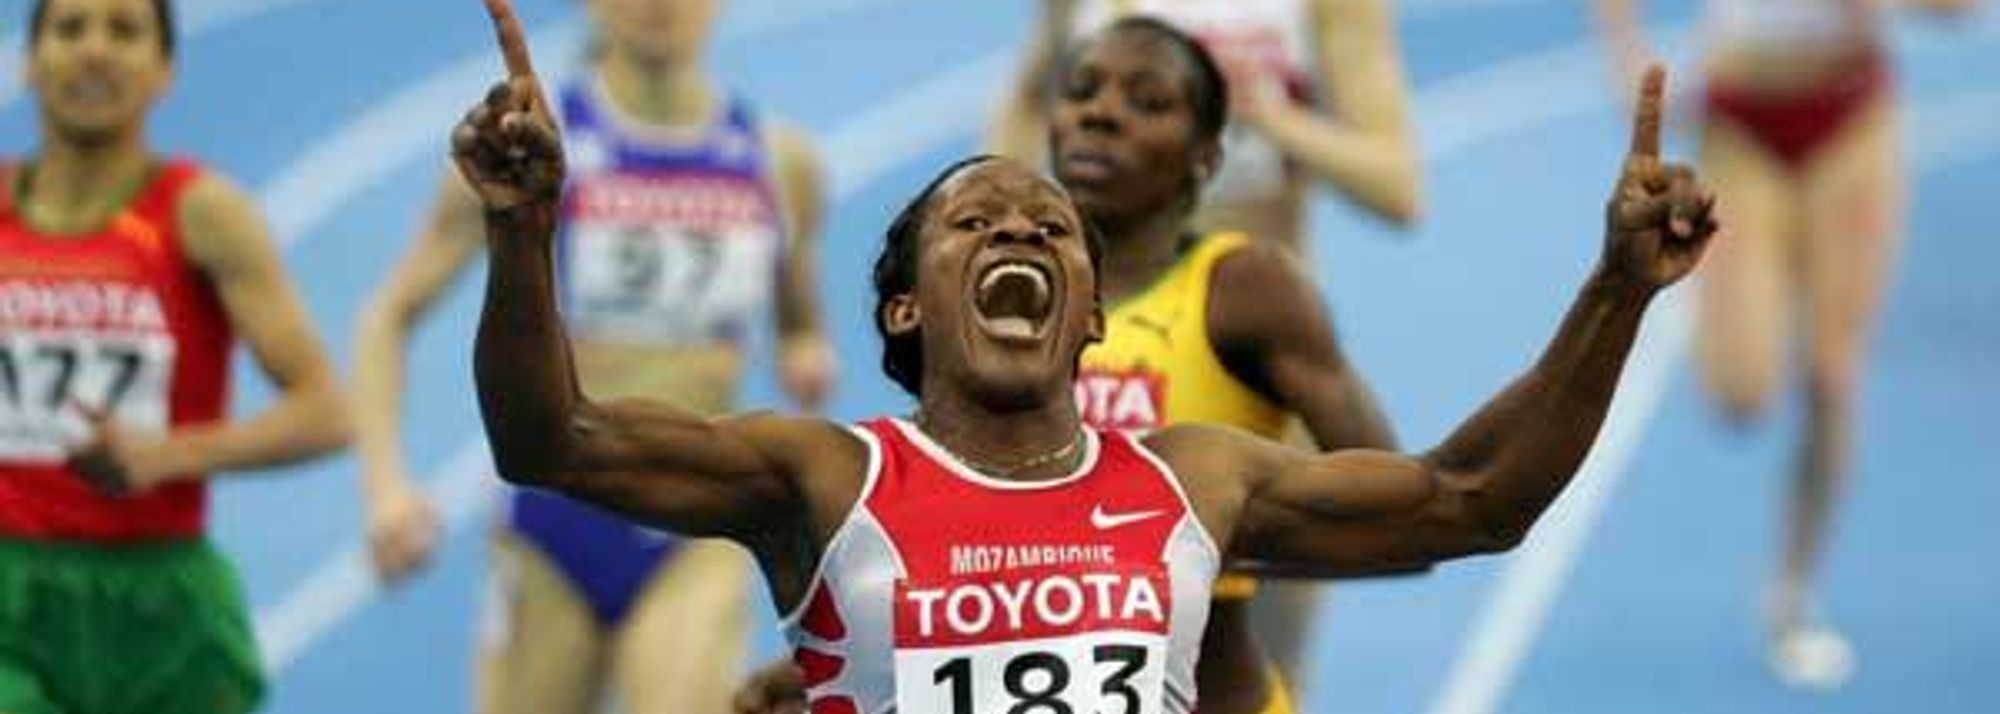 When Maria Mutola won her first indoor title in 1993, runner-up Kenia Sinclair (JAM) was not yet a teenager. Hasna Benhassi (MAR), the bronze medallist here, was barely into her teens. 13 years later, the pair are world class athletes, but are still chasing the Mozambican legend. This weekend in Moscow, they watched as Mutola powered her way to a fourth consecutive World Indoor title, and a nearly unbelievable seventh overall.